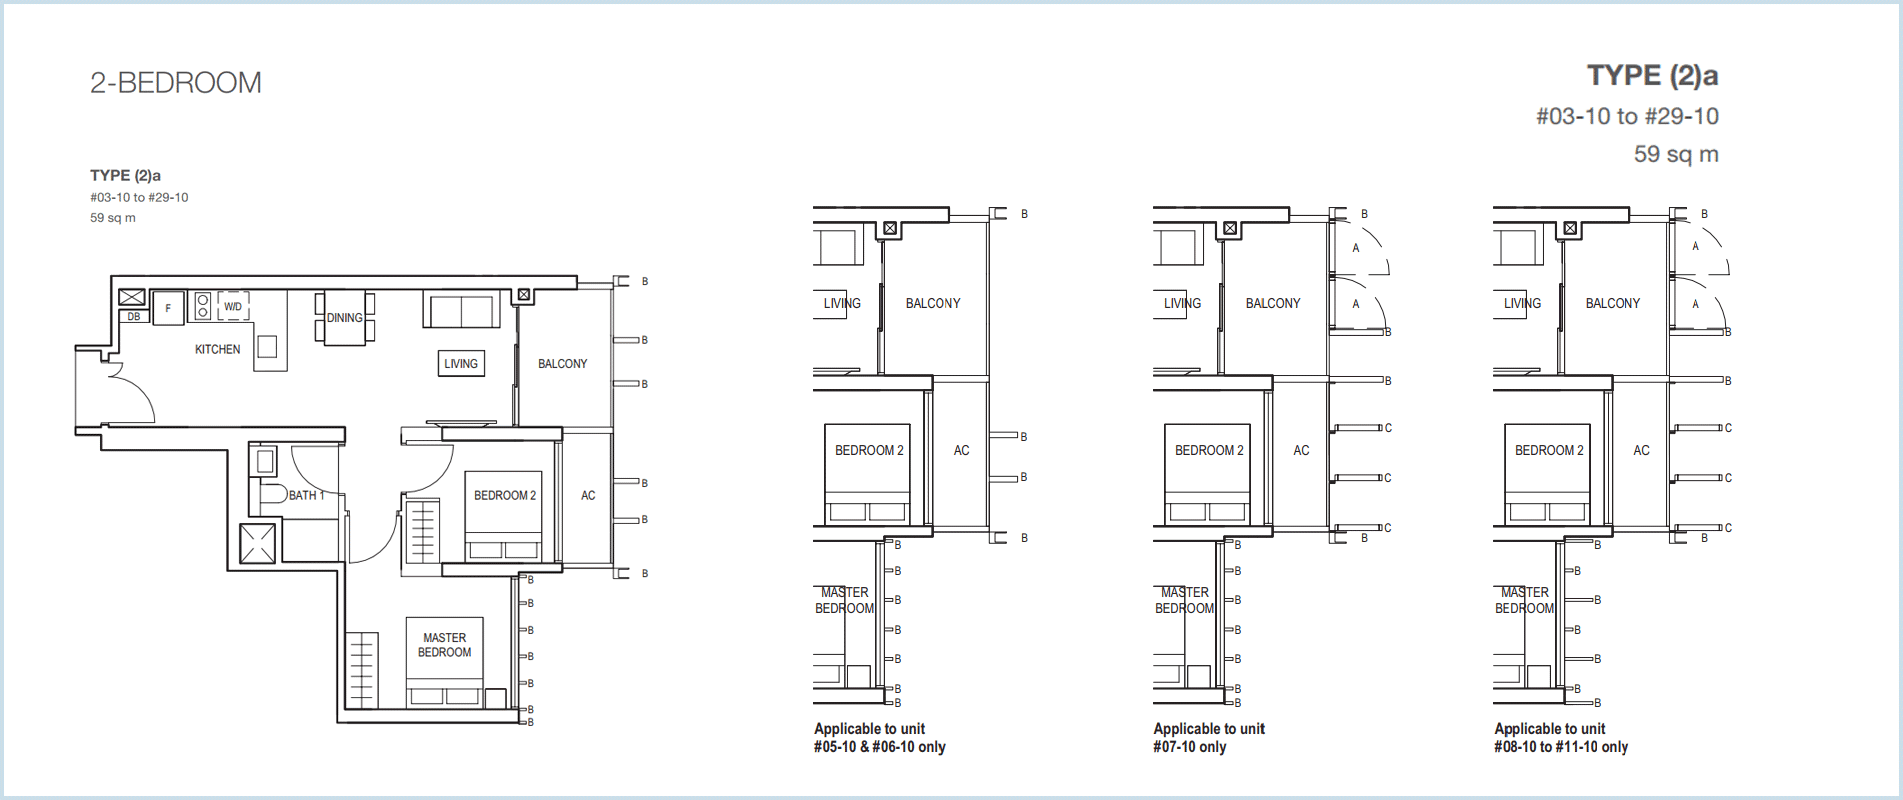 Midwood-hillview-floor plan 2BR 2a